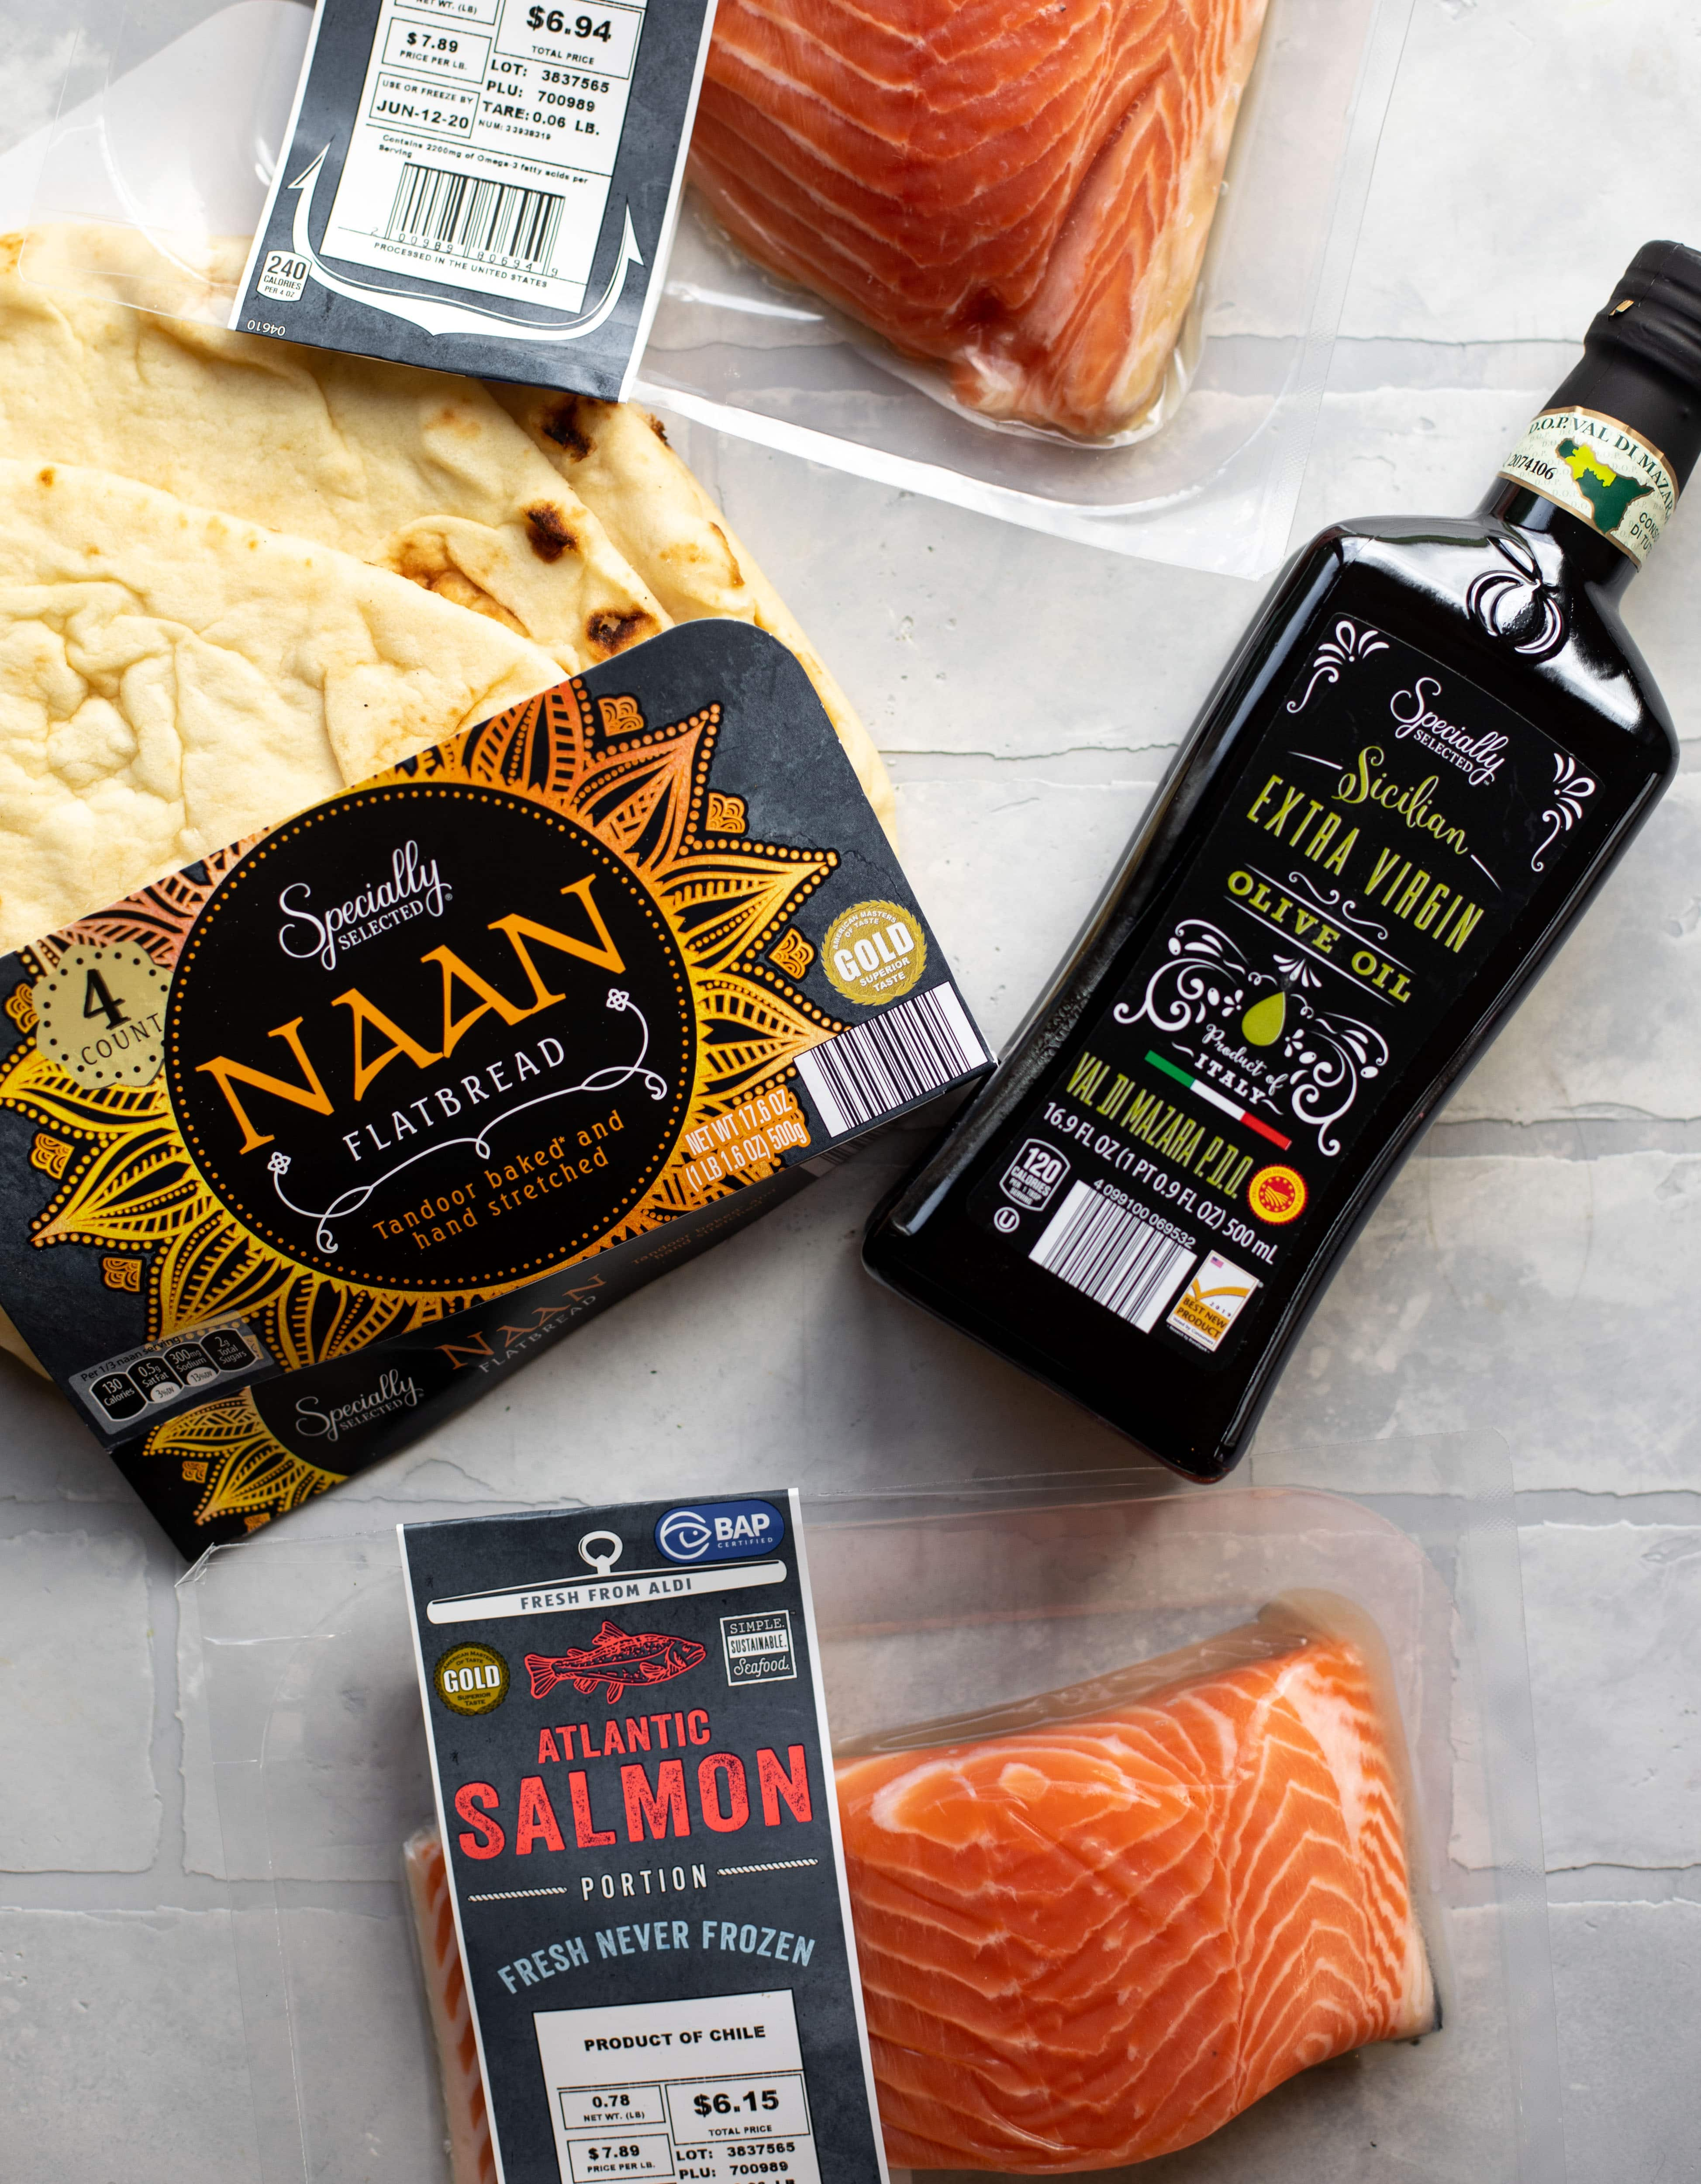 salmon, naan and olive oil from ALDI